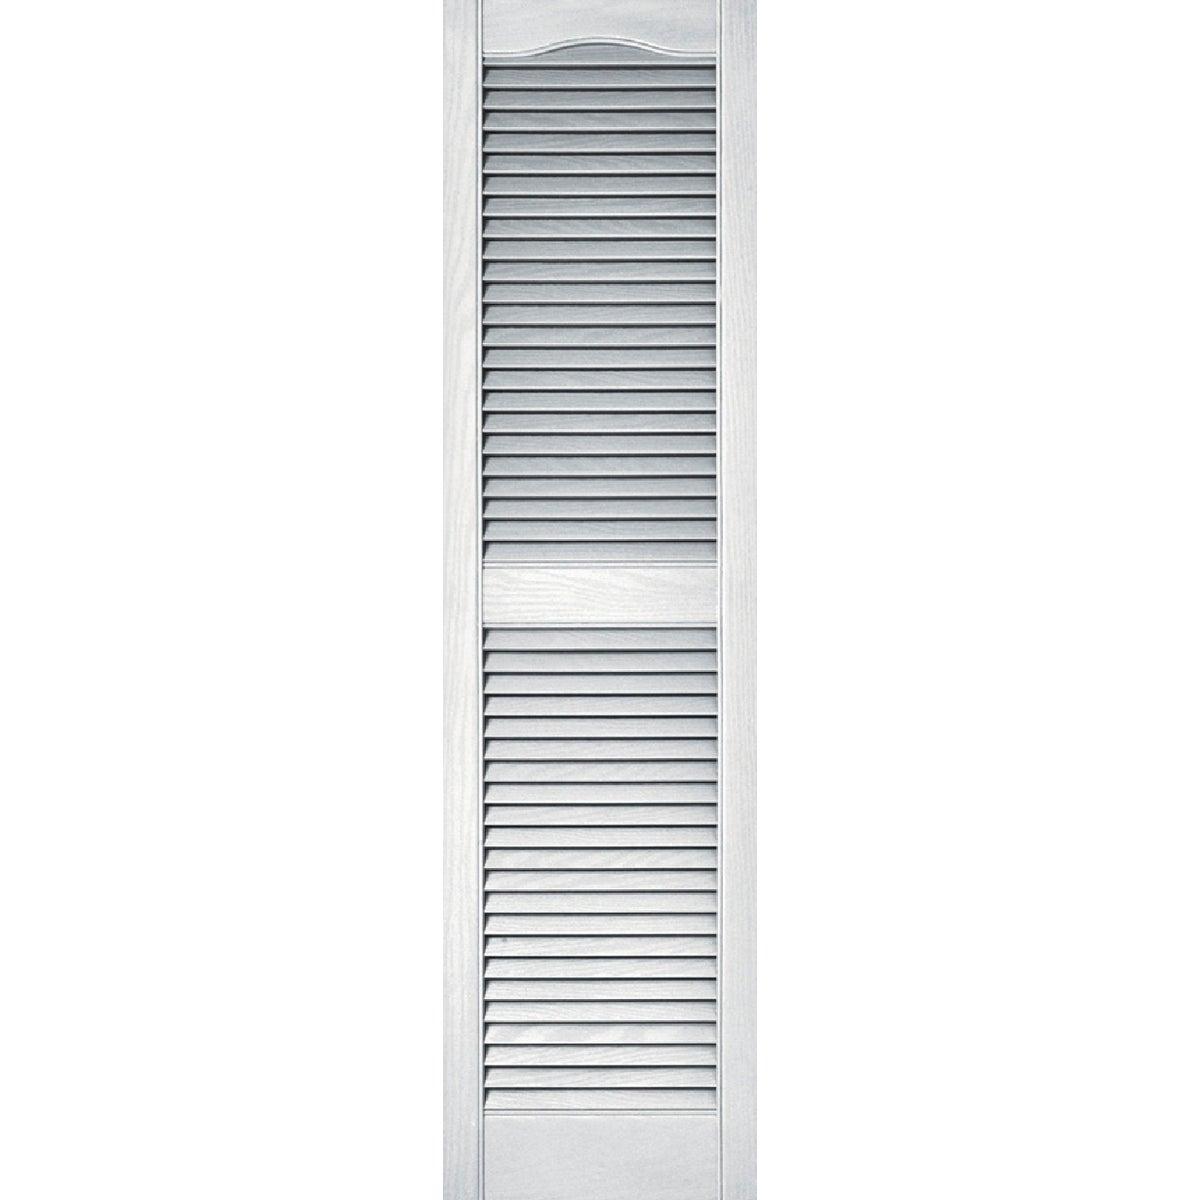 15X55 WHT LOUVER SHUTTER - 020140055001 by The Tapco Group